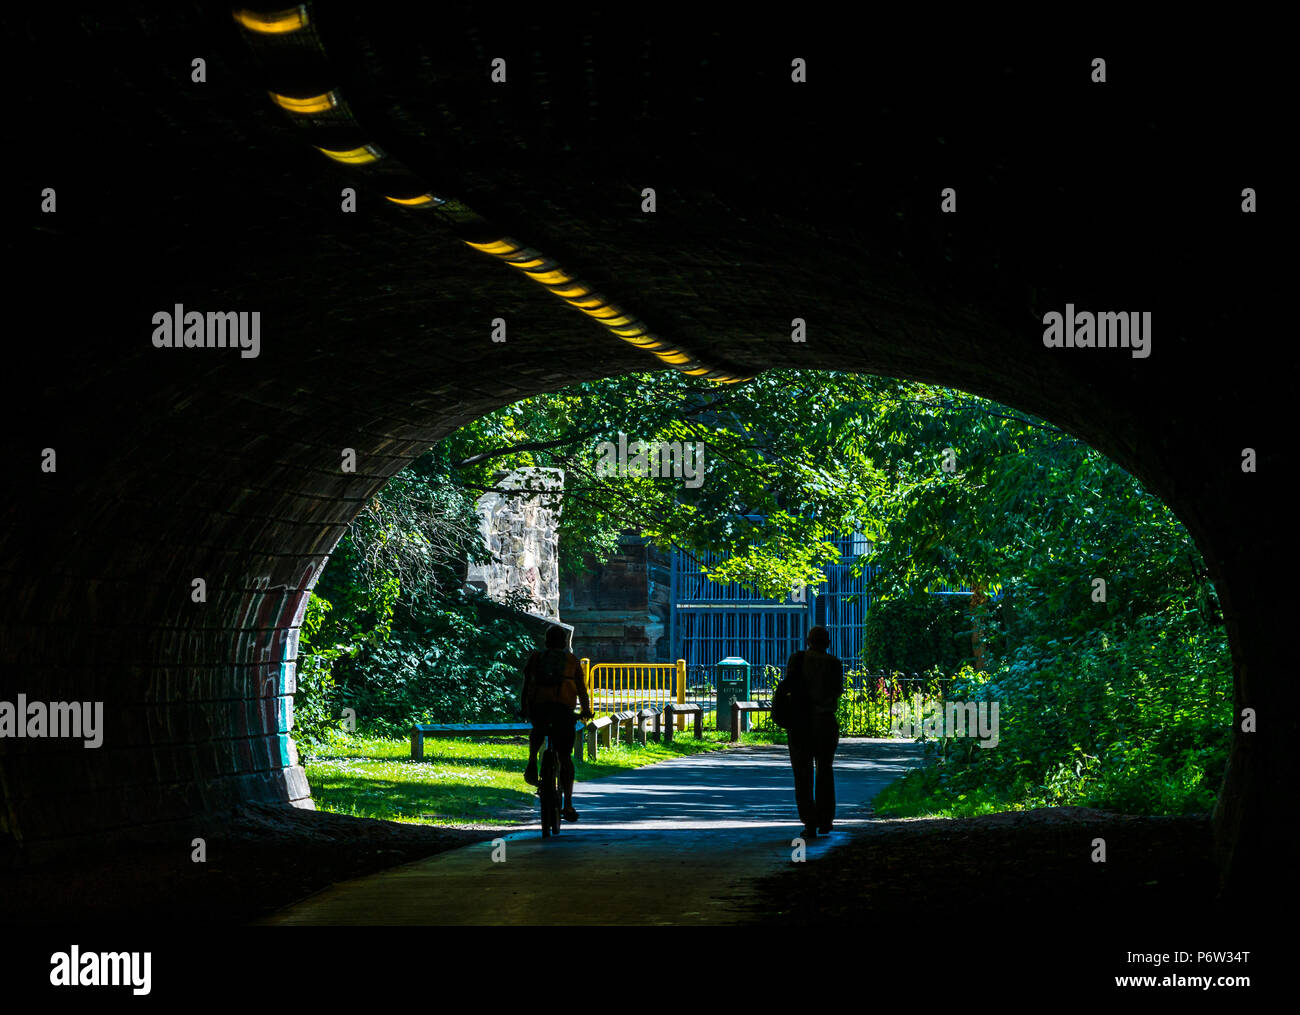 Silhouettes of man walking and cyclist in entrance of disused railway tunnel with contrast of sunshine and darkness. A commuting route, Edinburgh, Scotland, UK - Stock Image